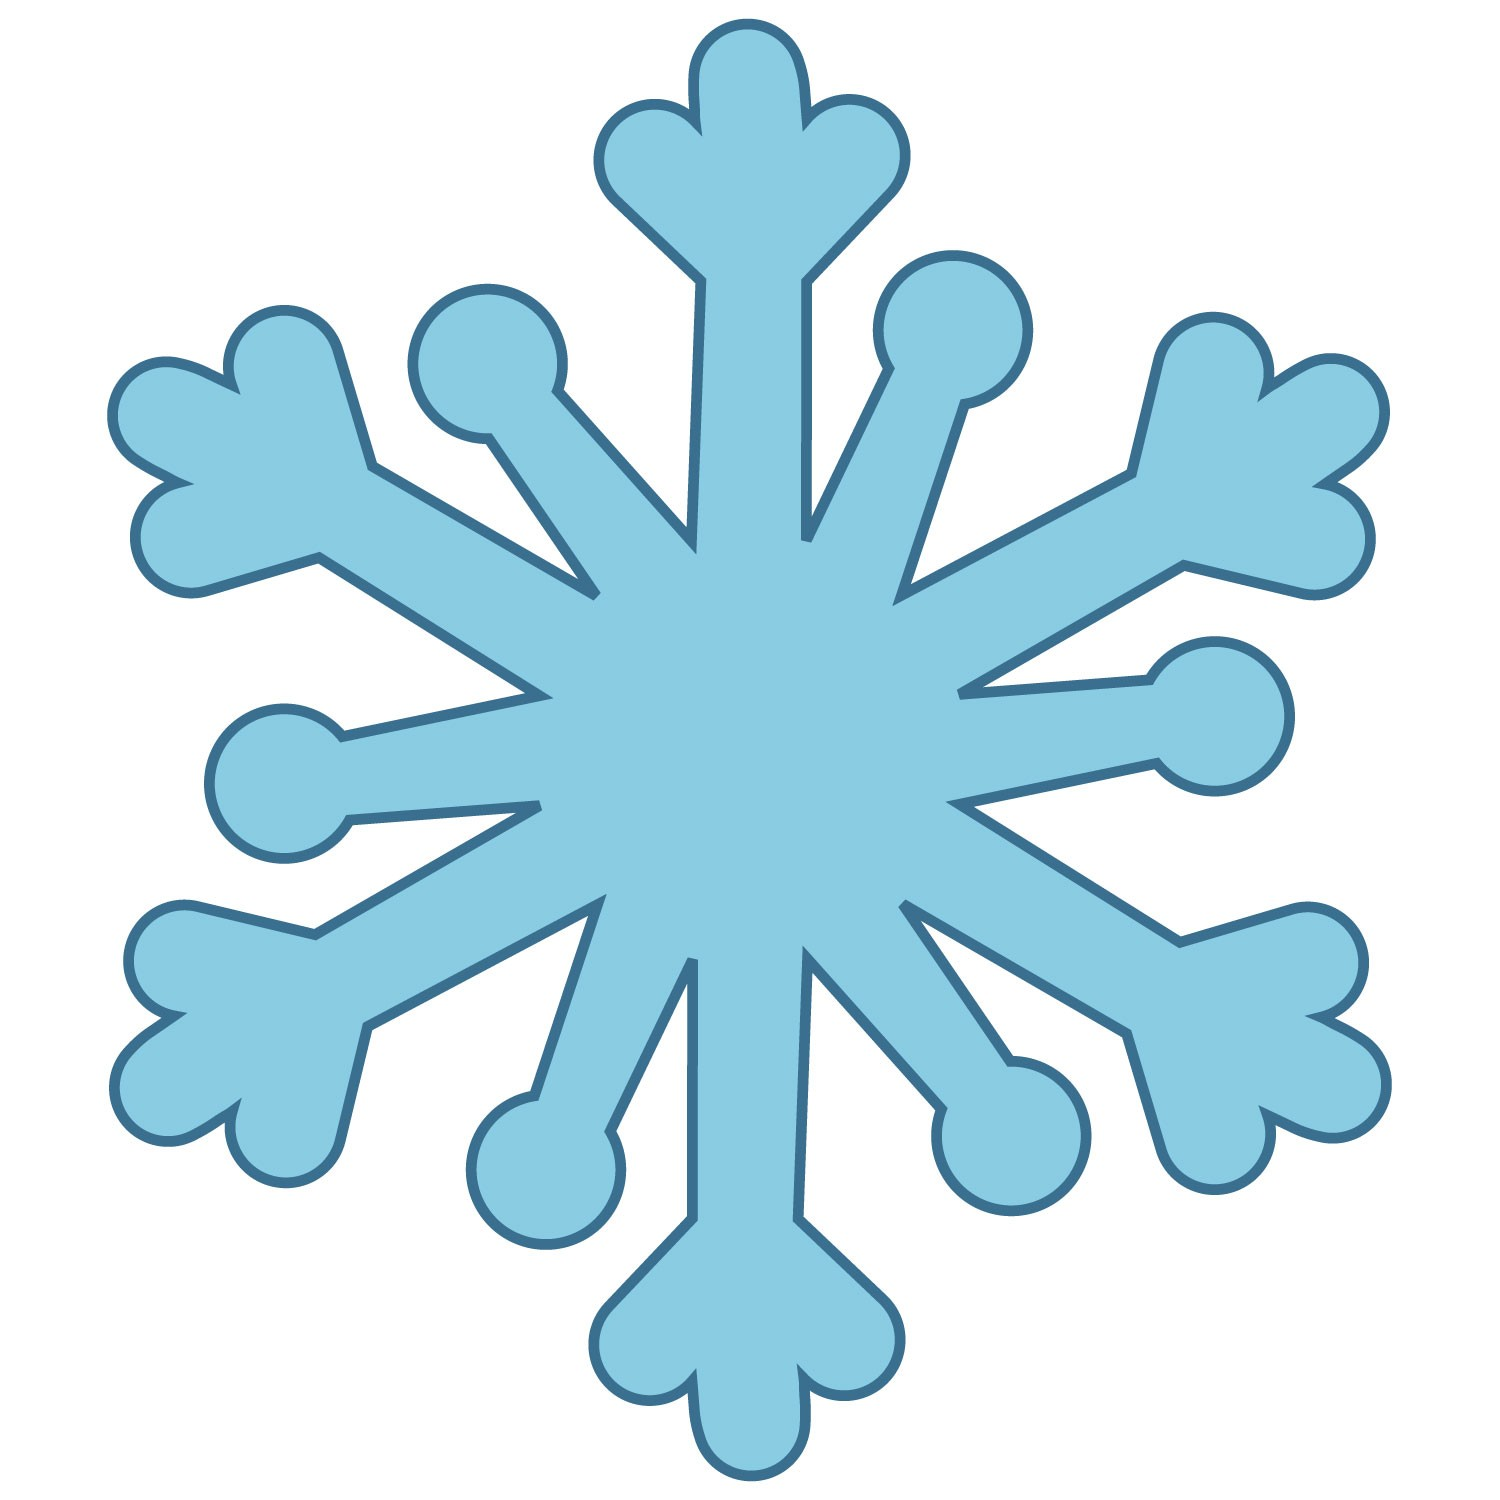 1500x1500 Free Snowflakes Clip Art The Graphics Fairy 3